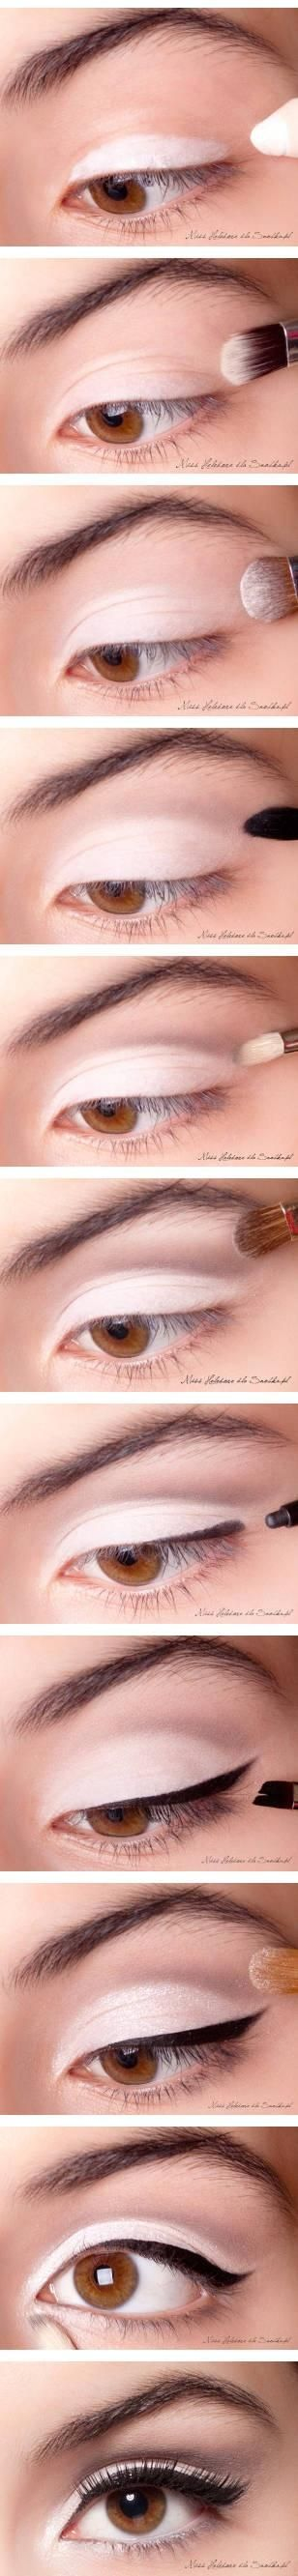 25+ best ideas about Small eyes makeup on Pinterest   Makeup for ...